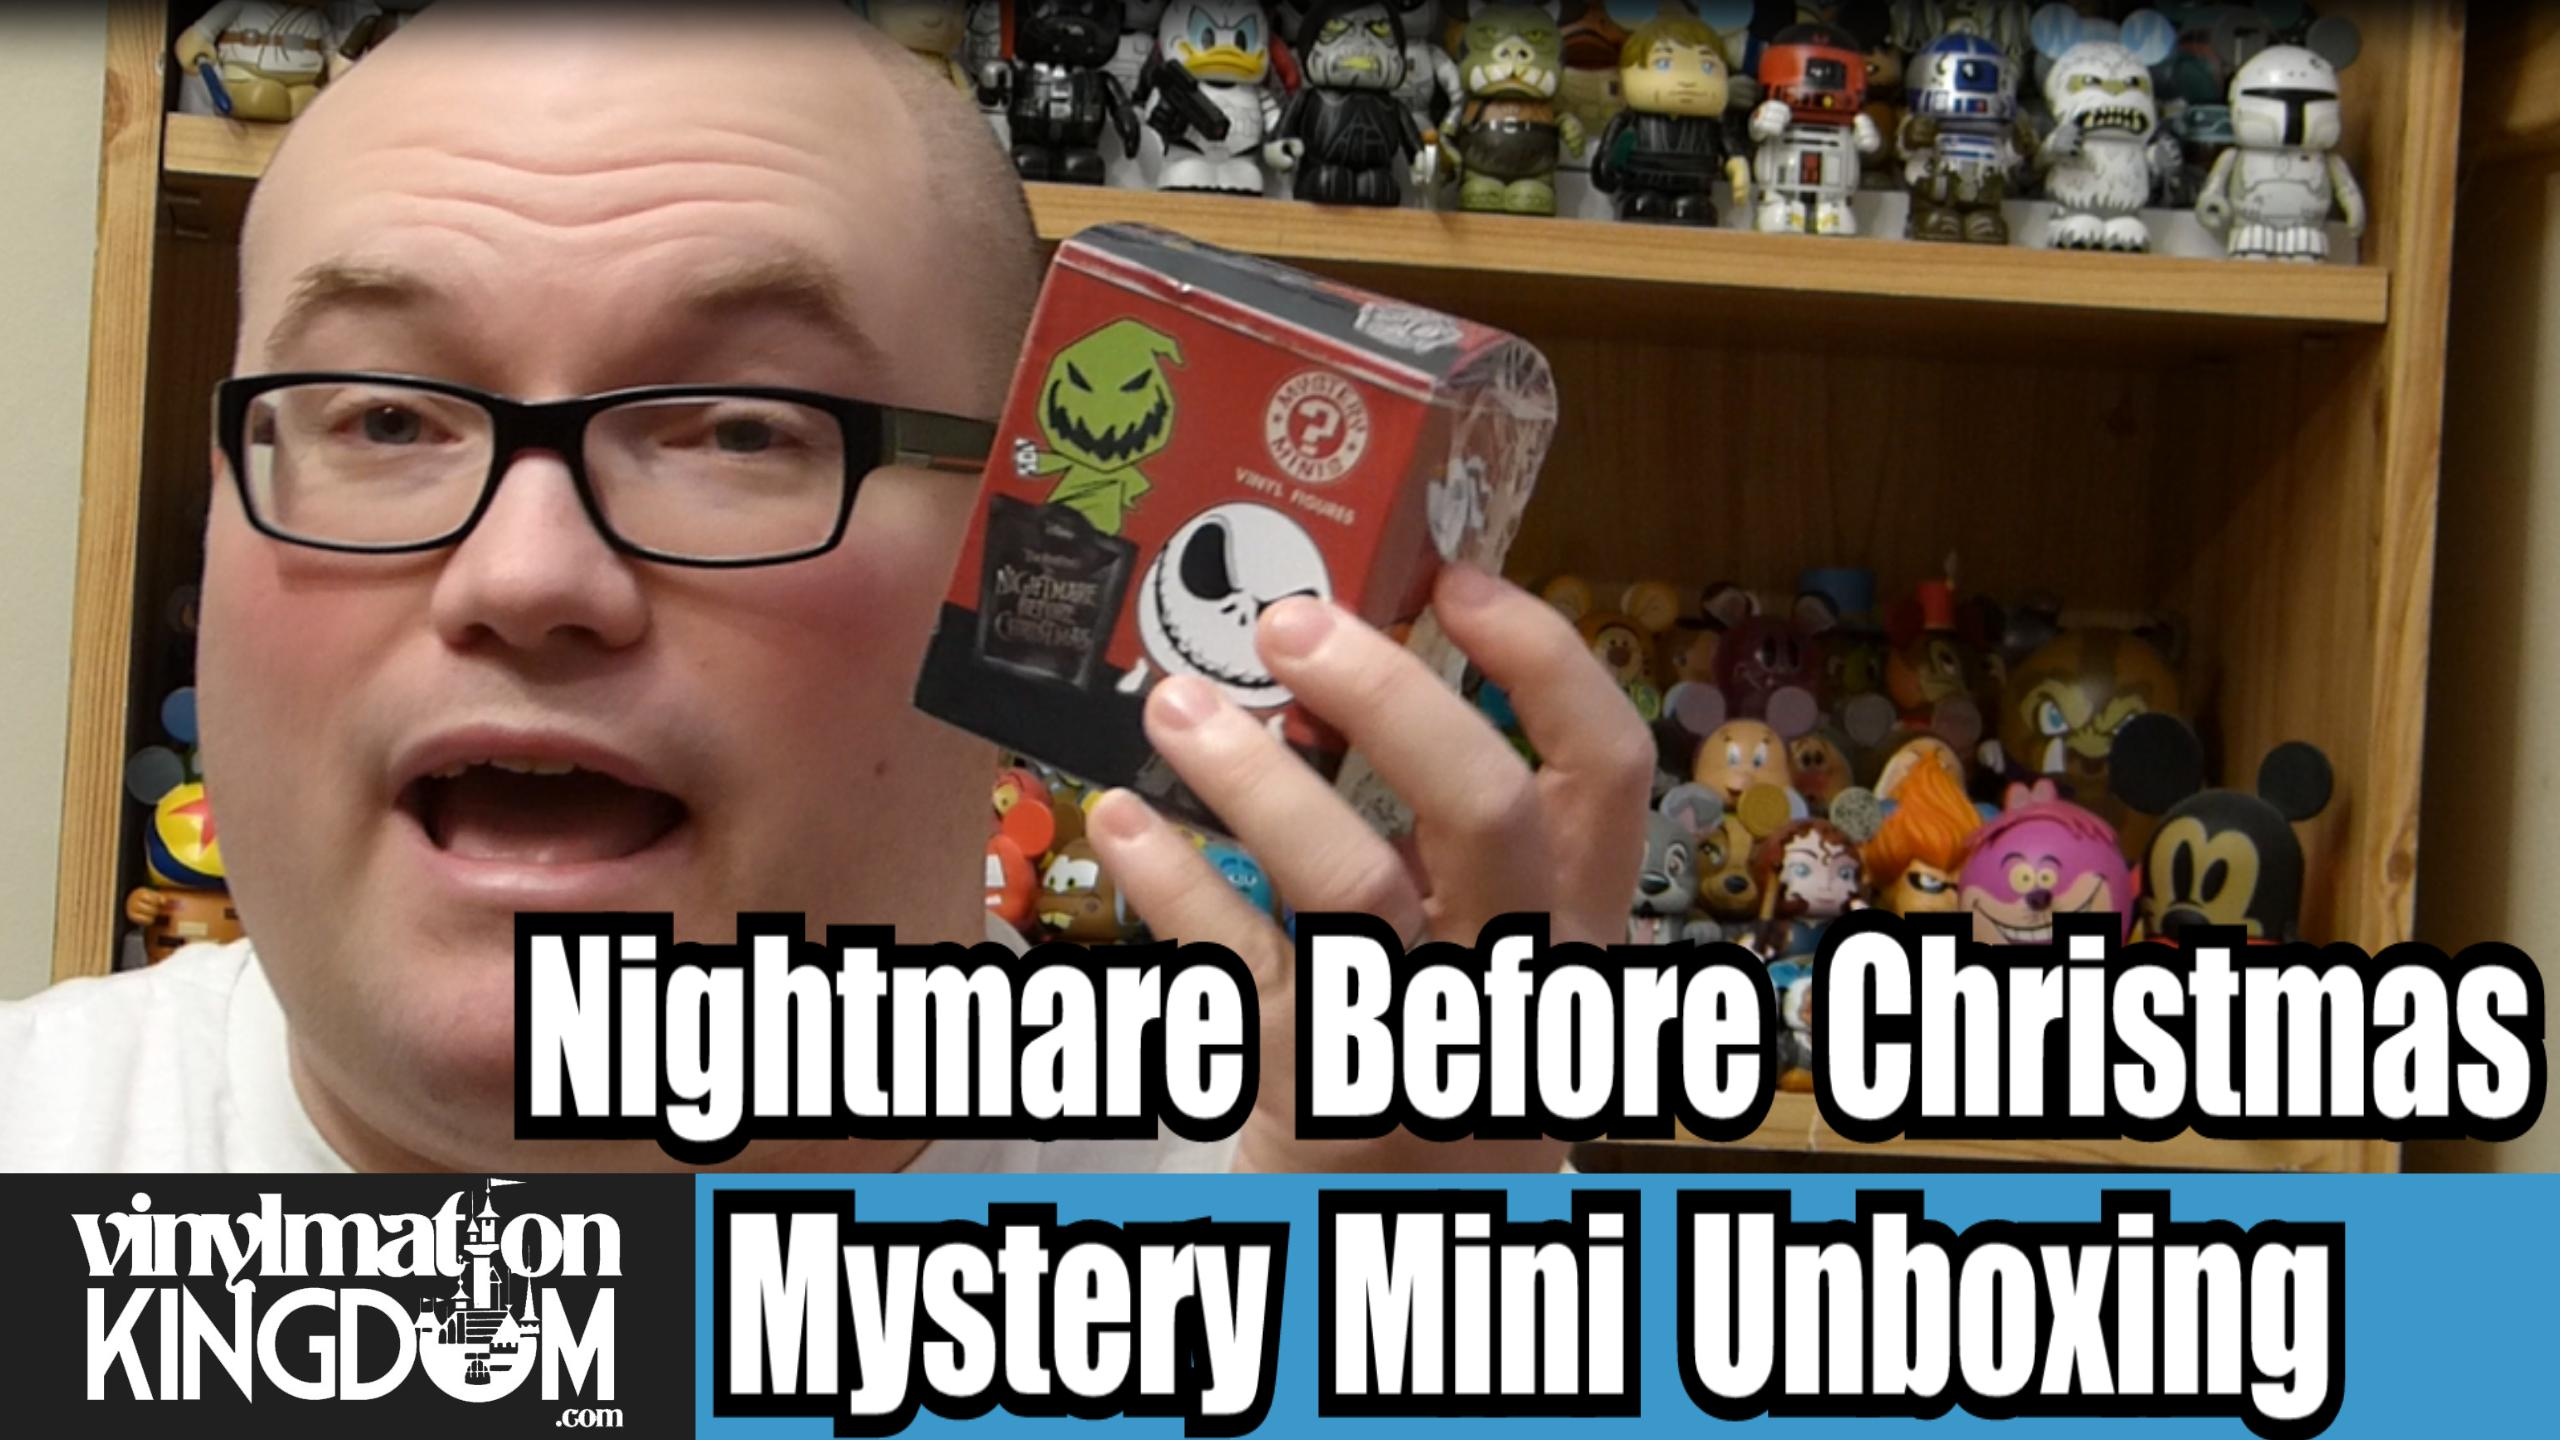 Nightmare Before Christmas Mystery Mini Unboxing